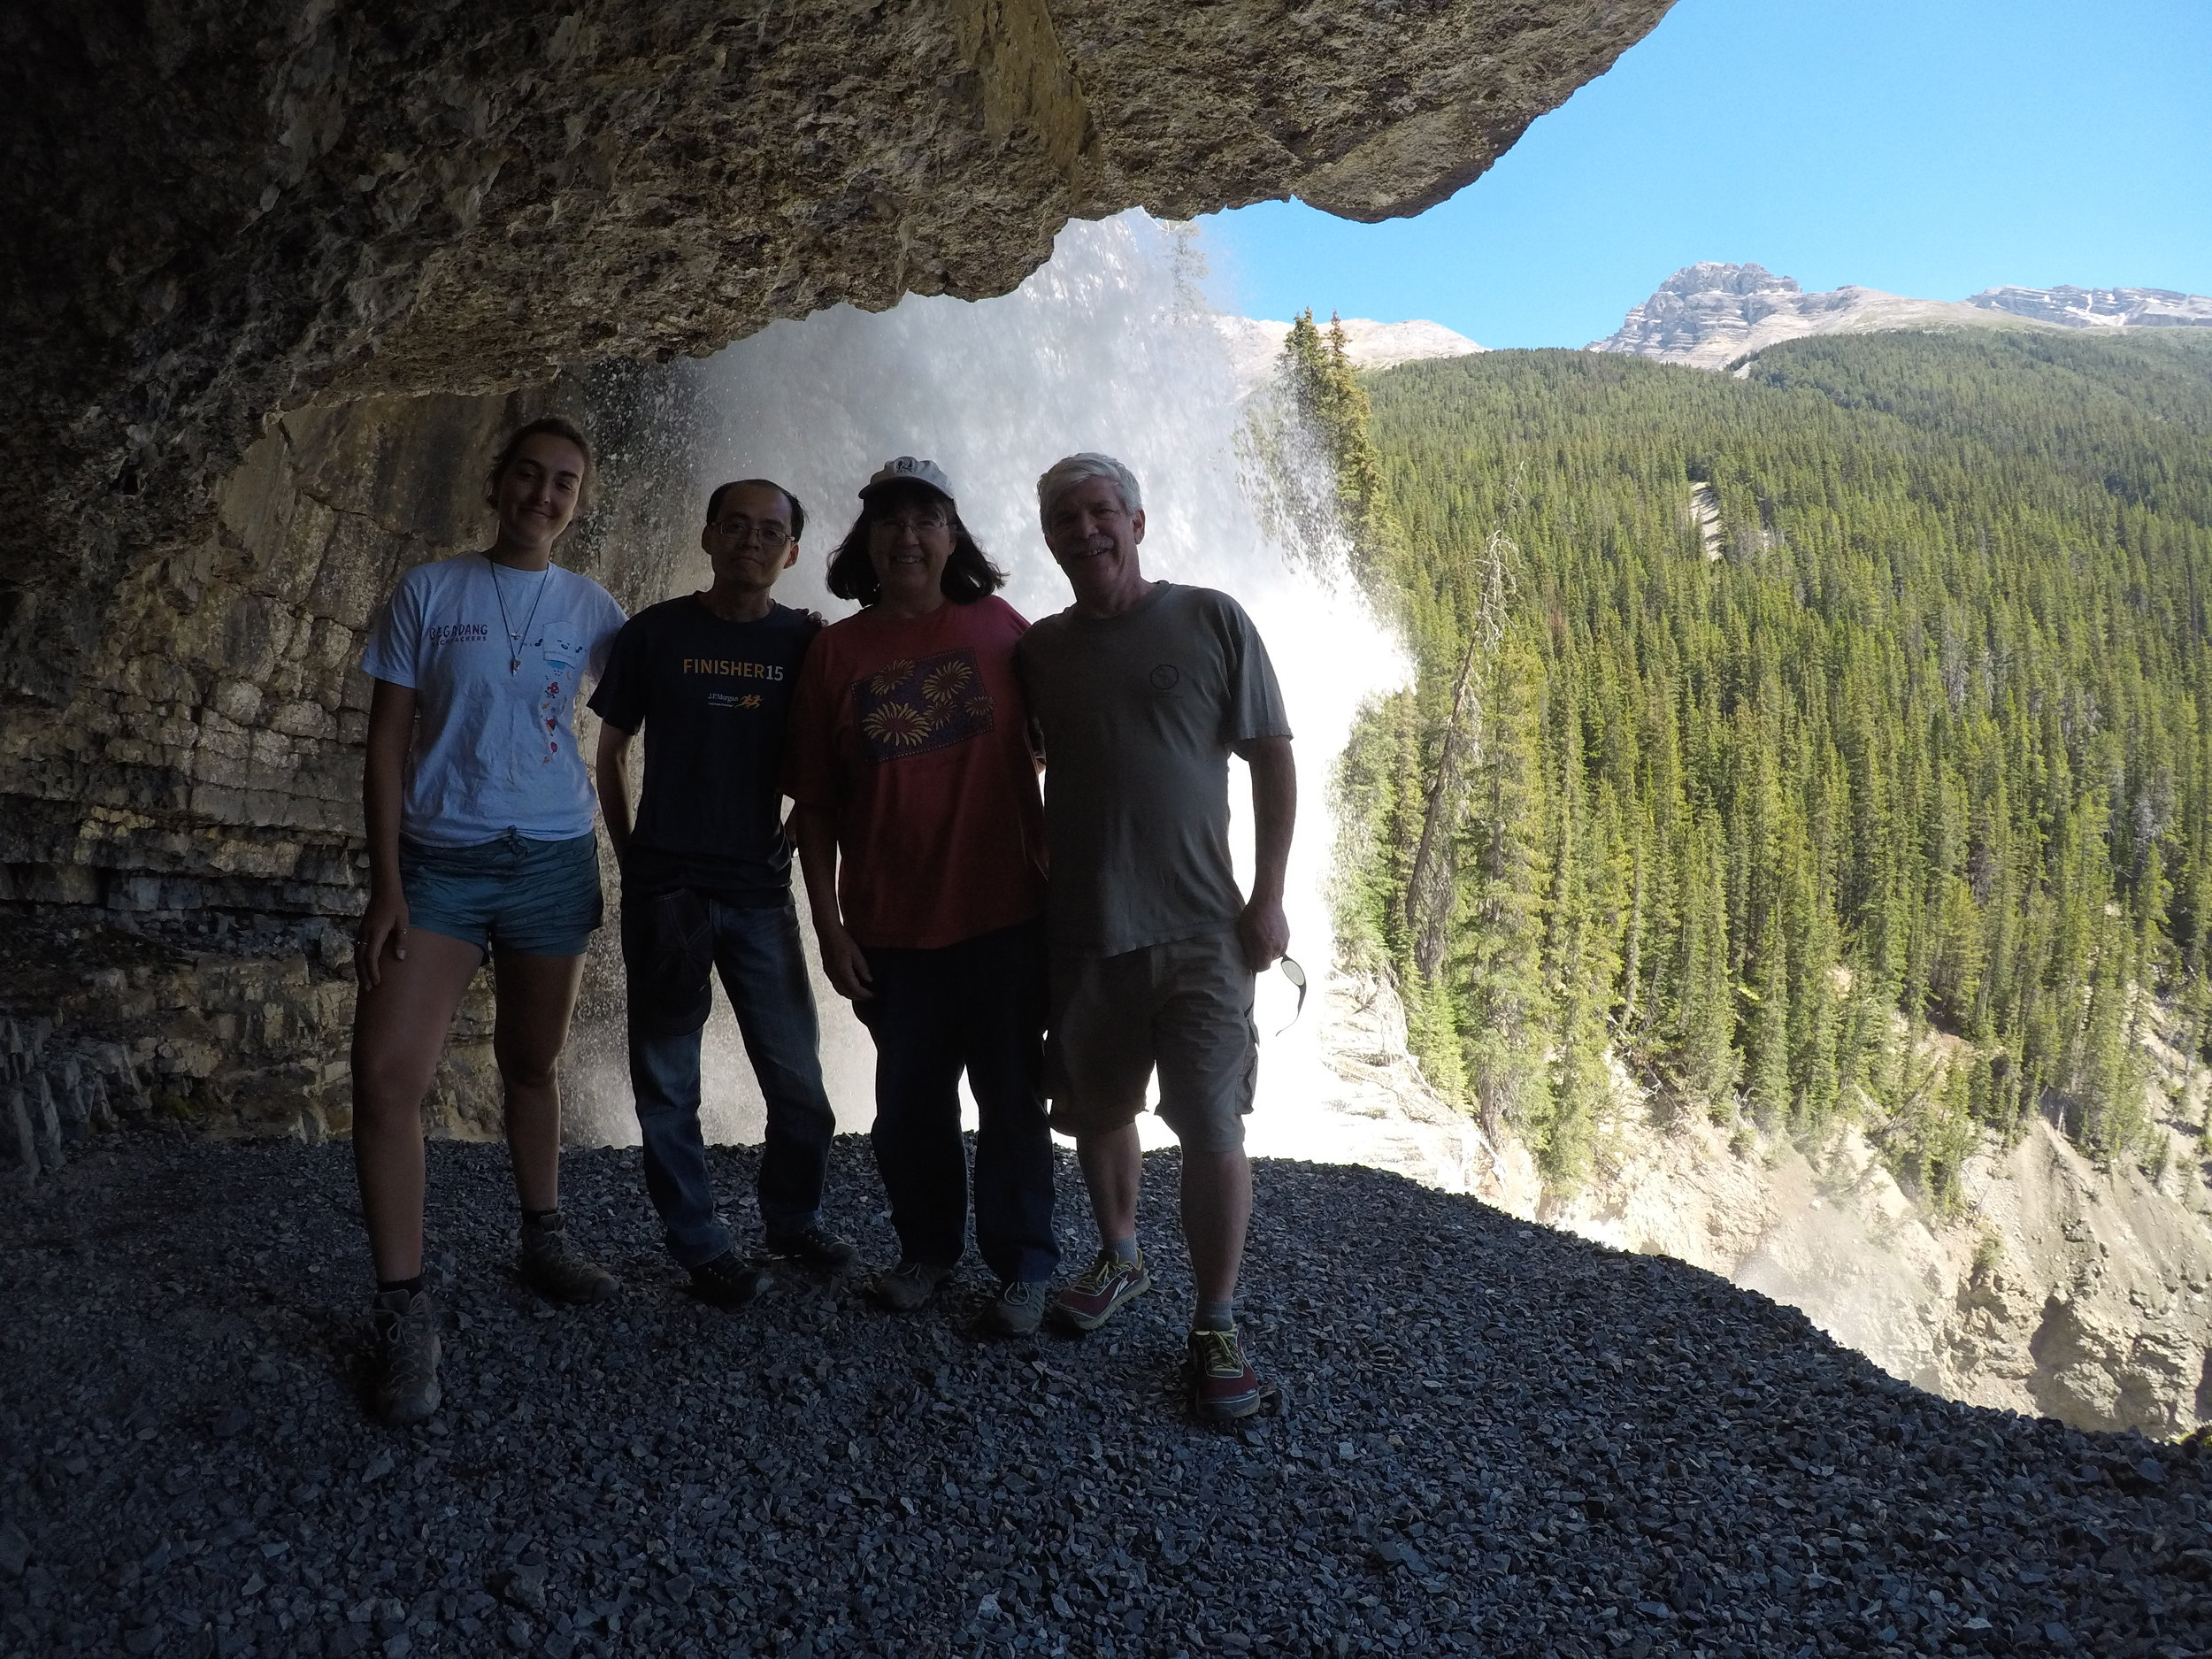 Waterfall adventure during a guided tour of the rocky mountains.